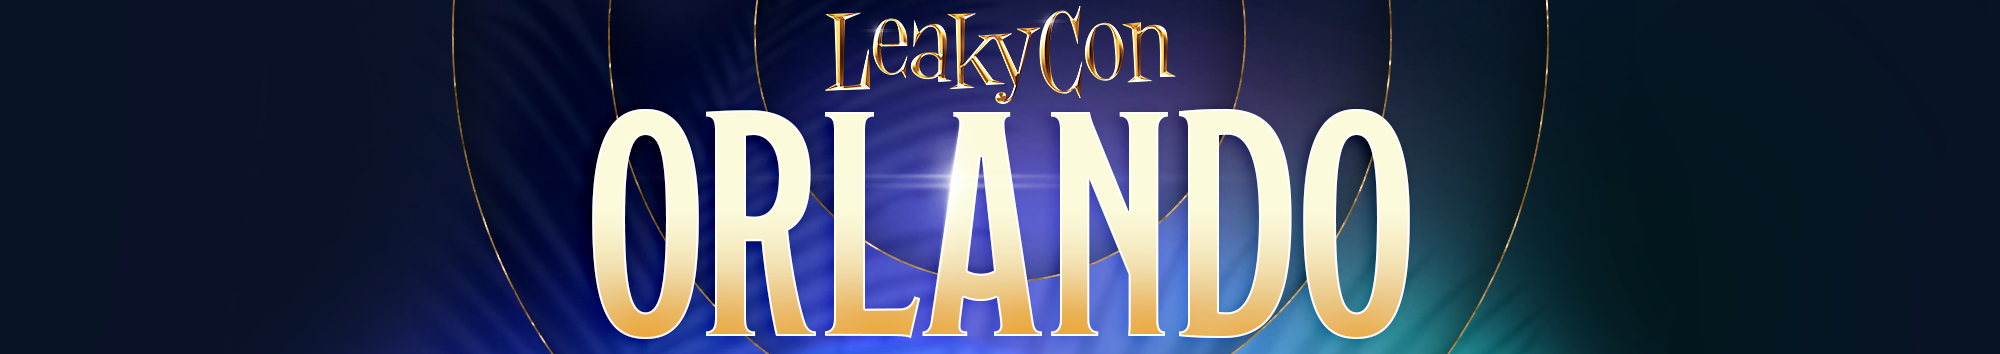 Tickets for LeakyCon 2021: Orlando in Orlando from ShowClix